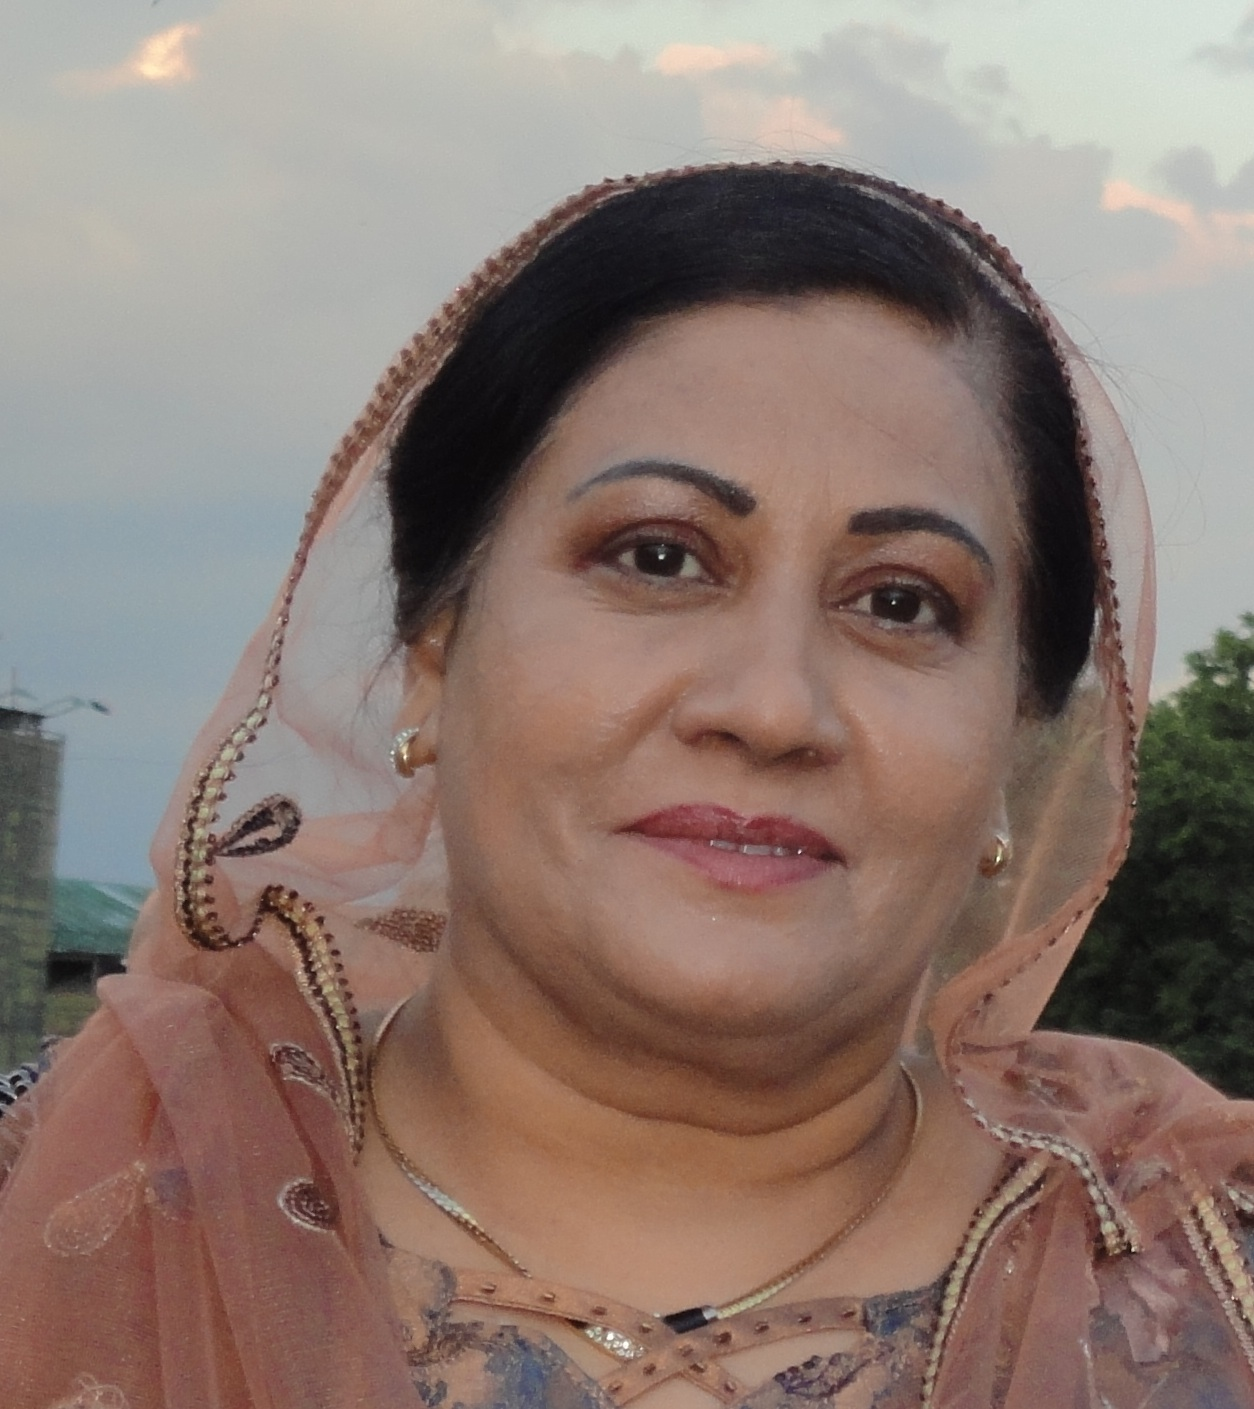 Ravinder Kaur Nijjar Photo.jpg